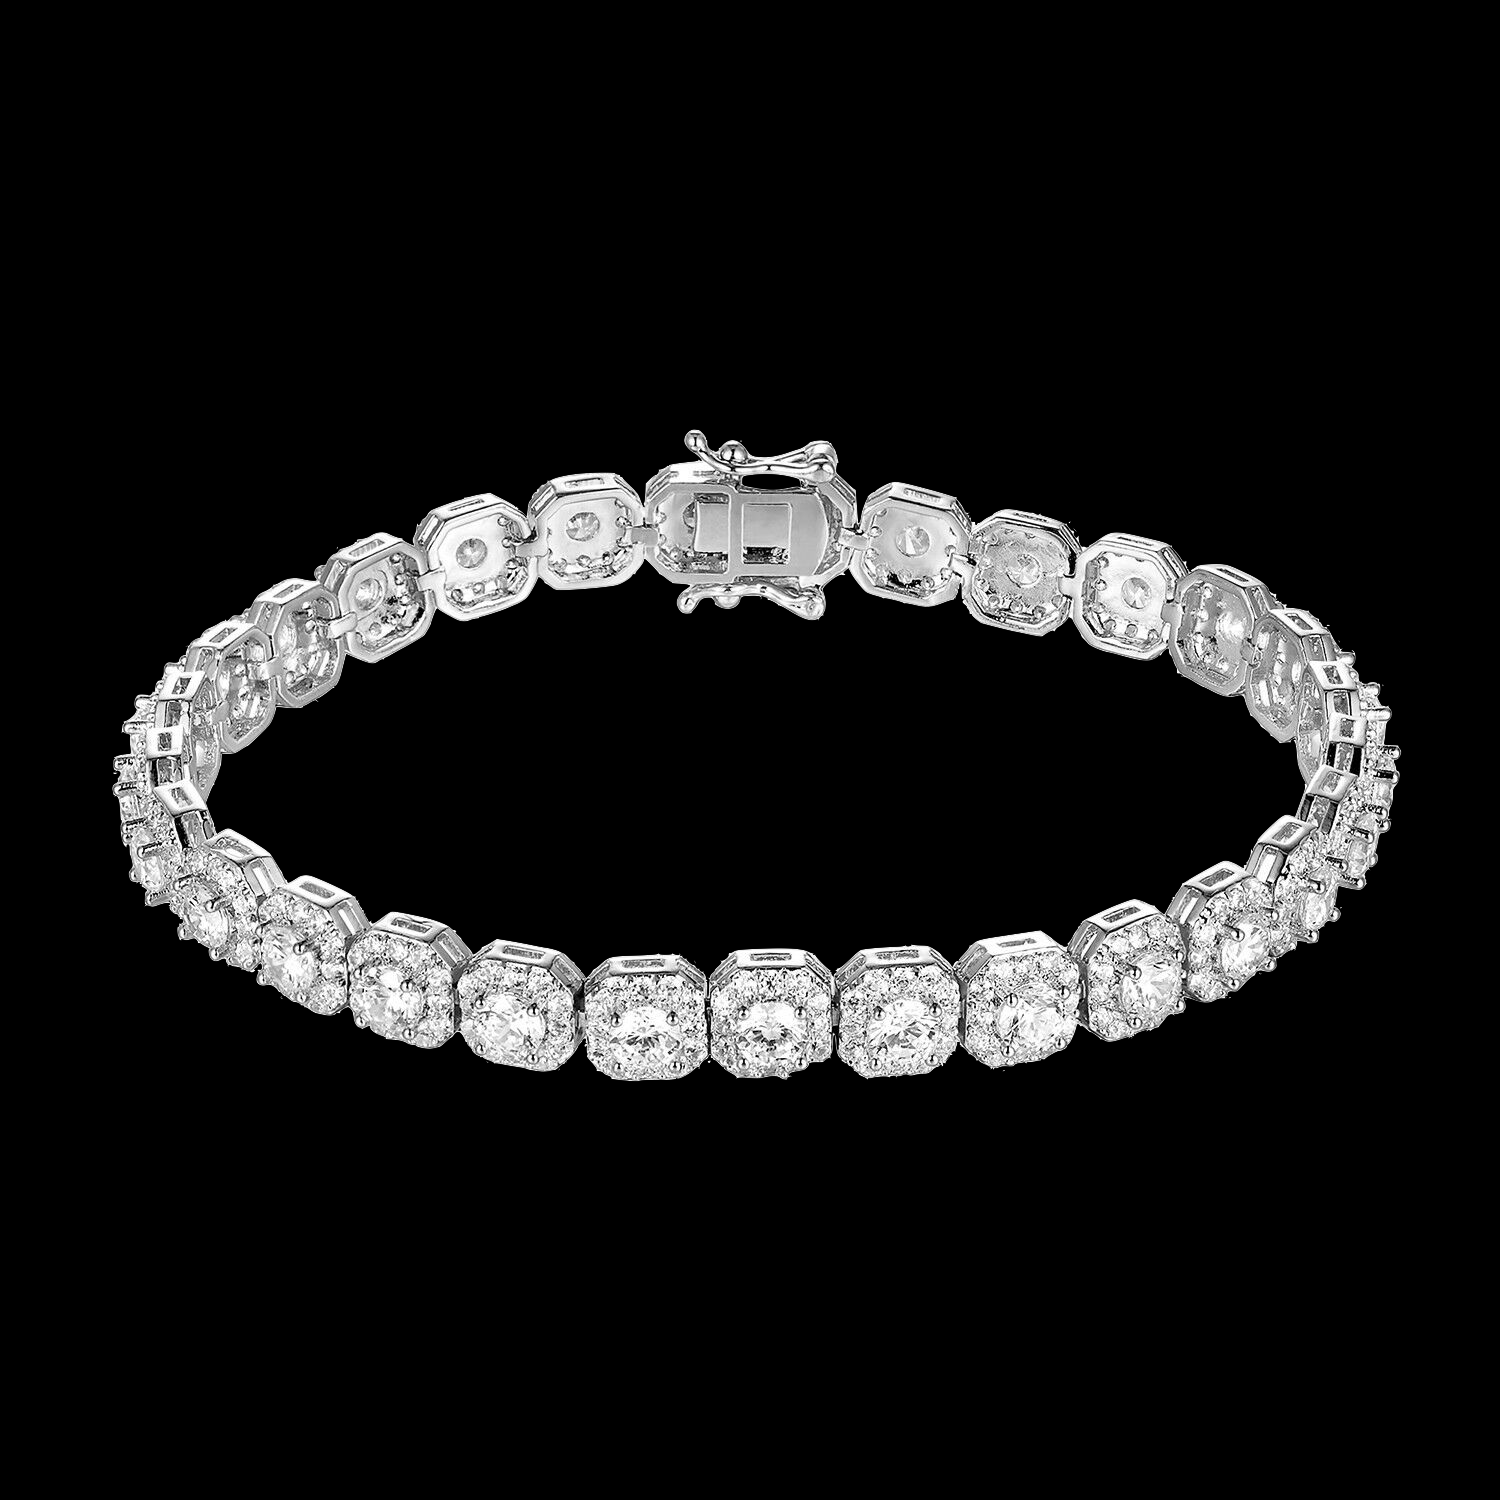 Double layered Square Tennis Style Bracelet Simulated Diamond 7mm Sterling Silver